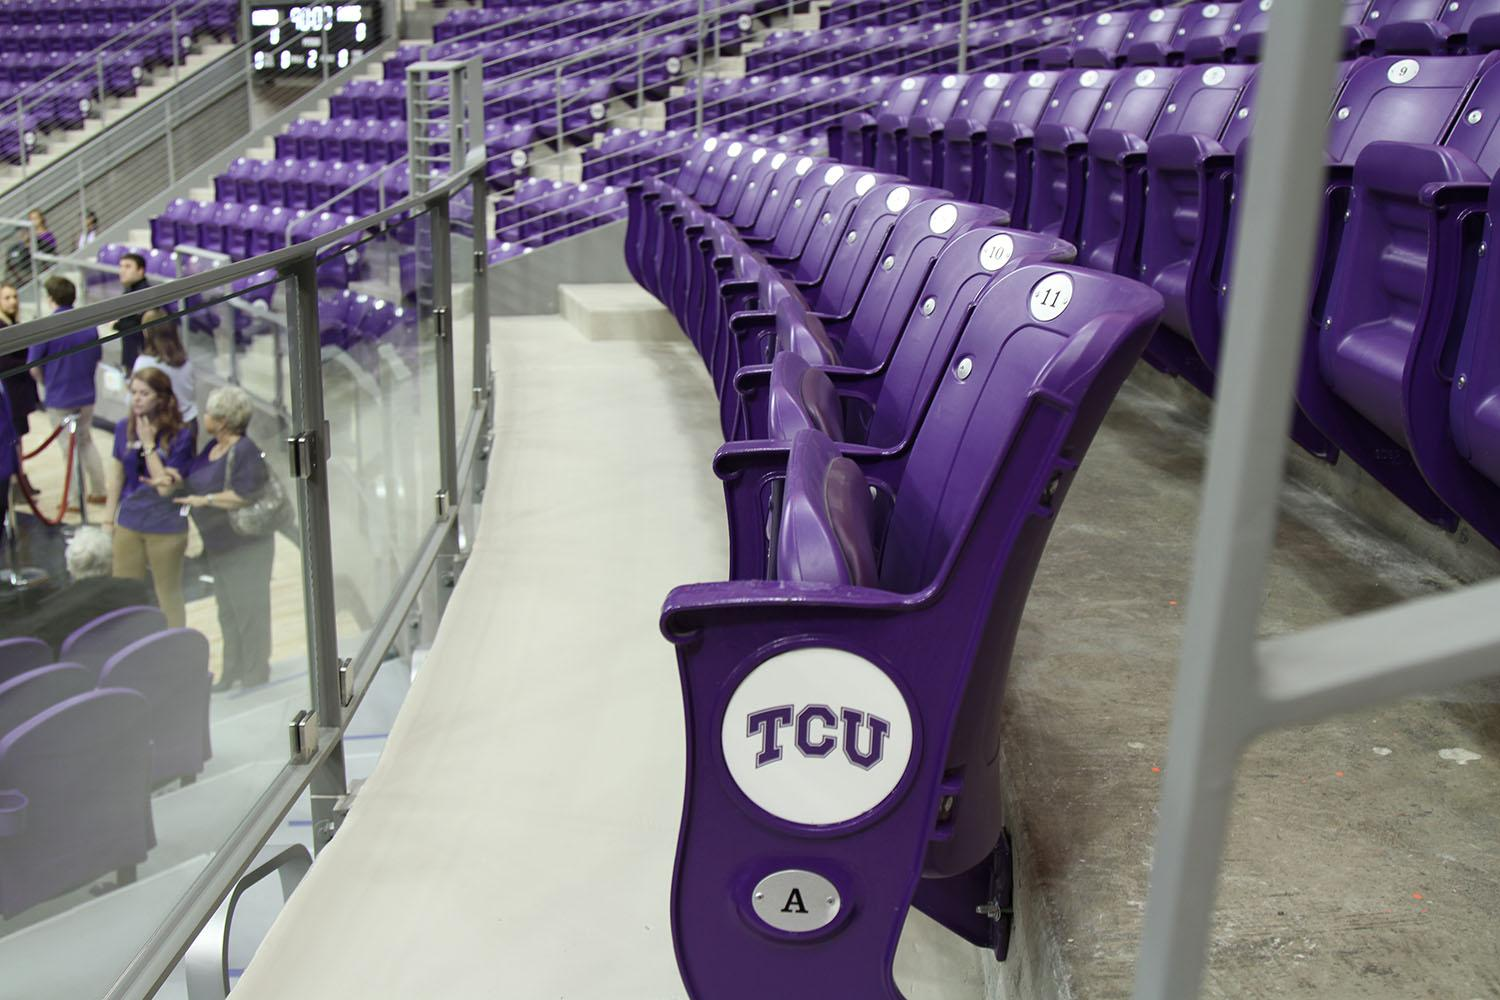 New security measures at home athletic events